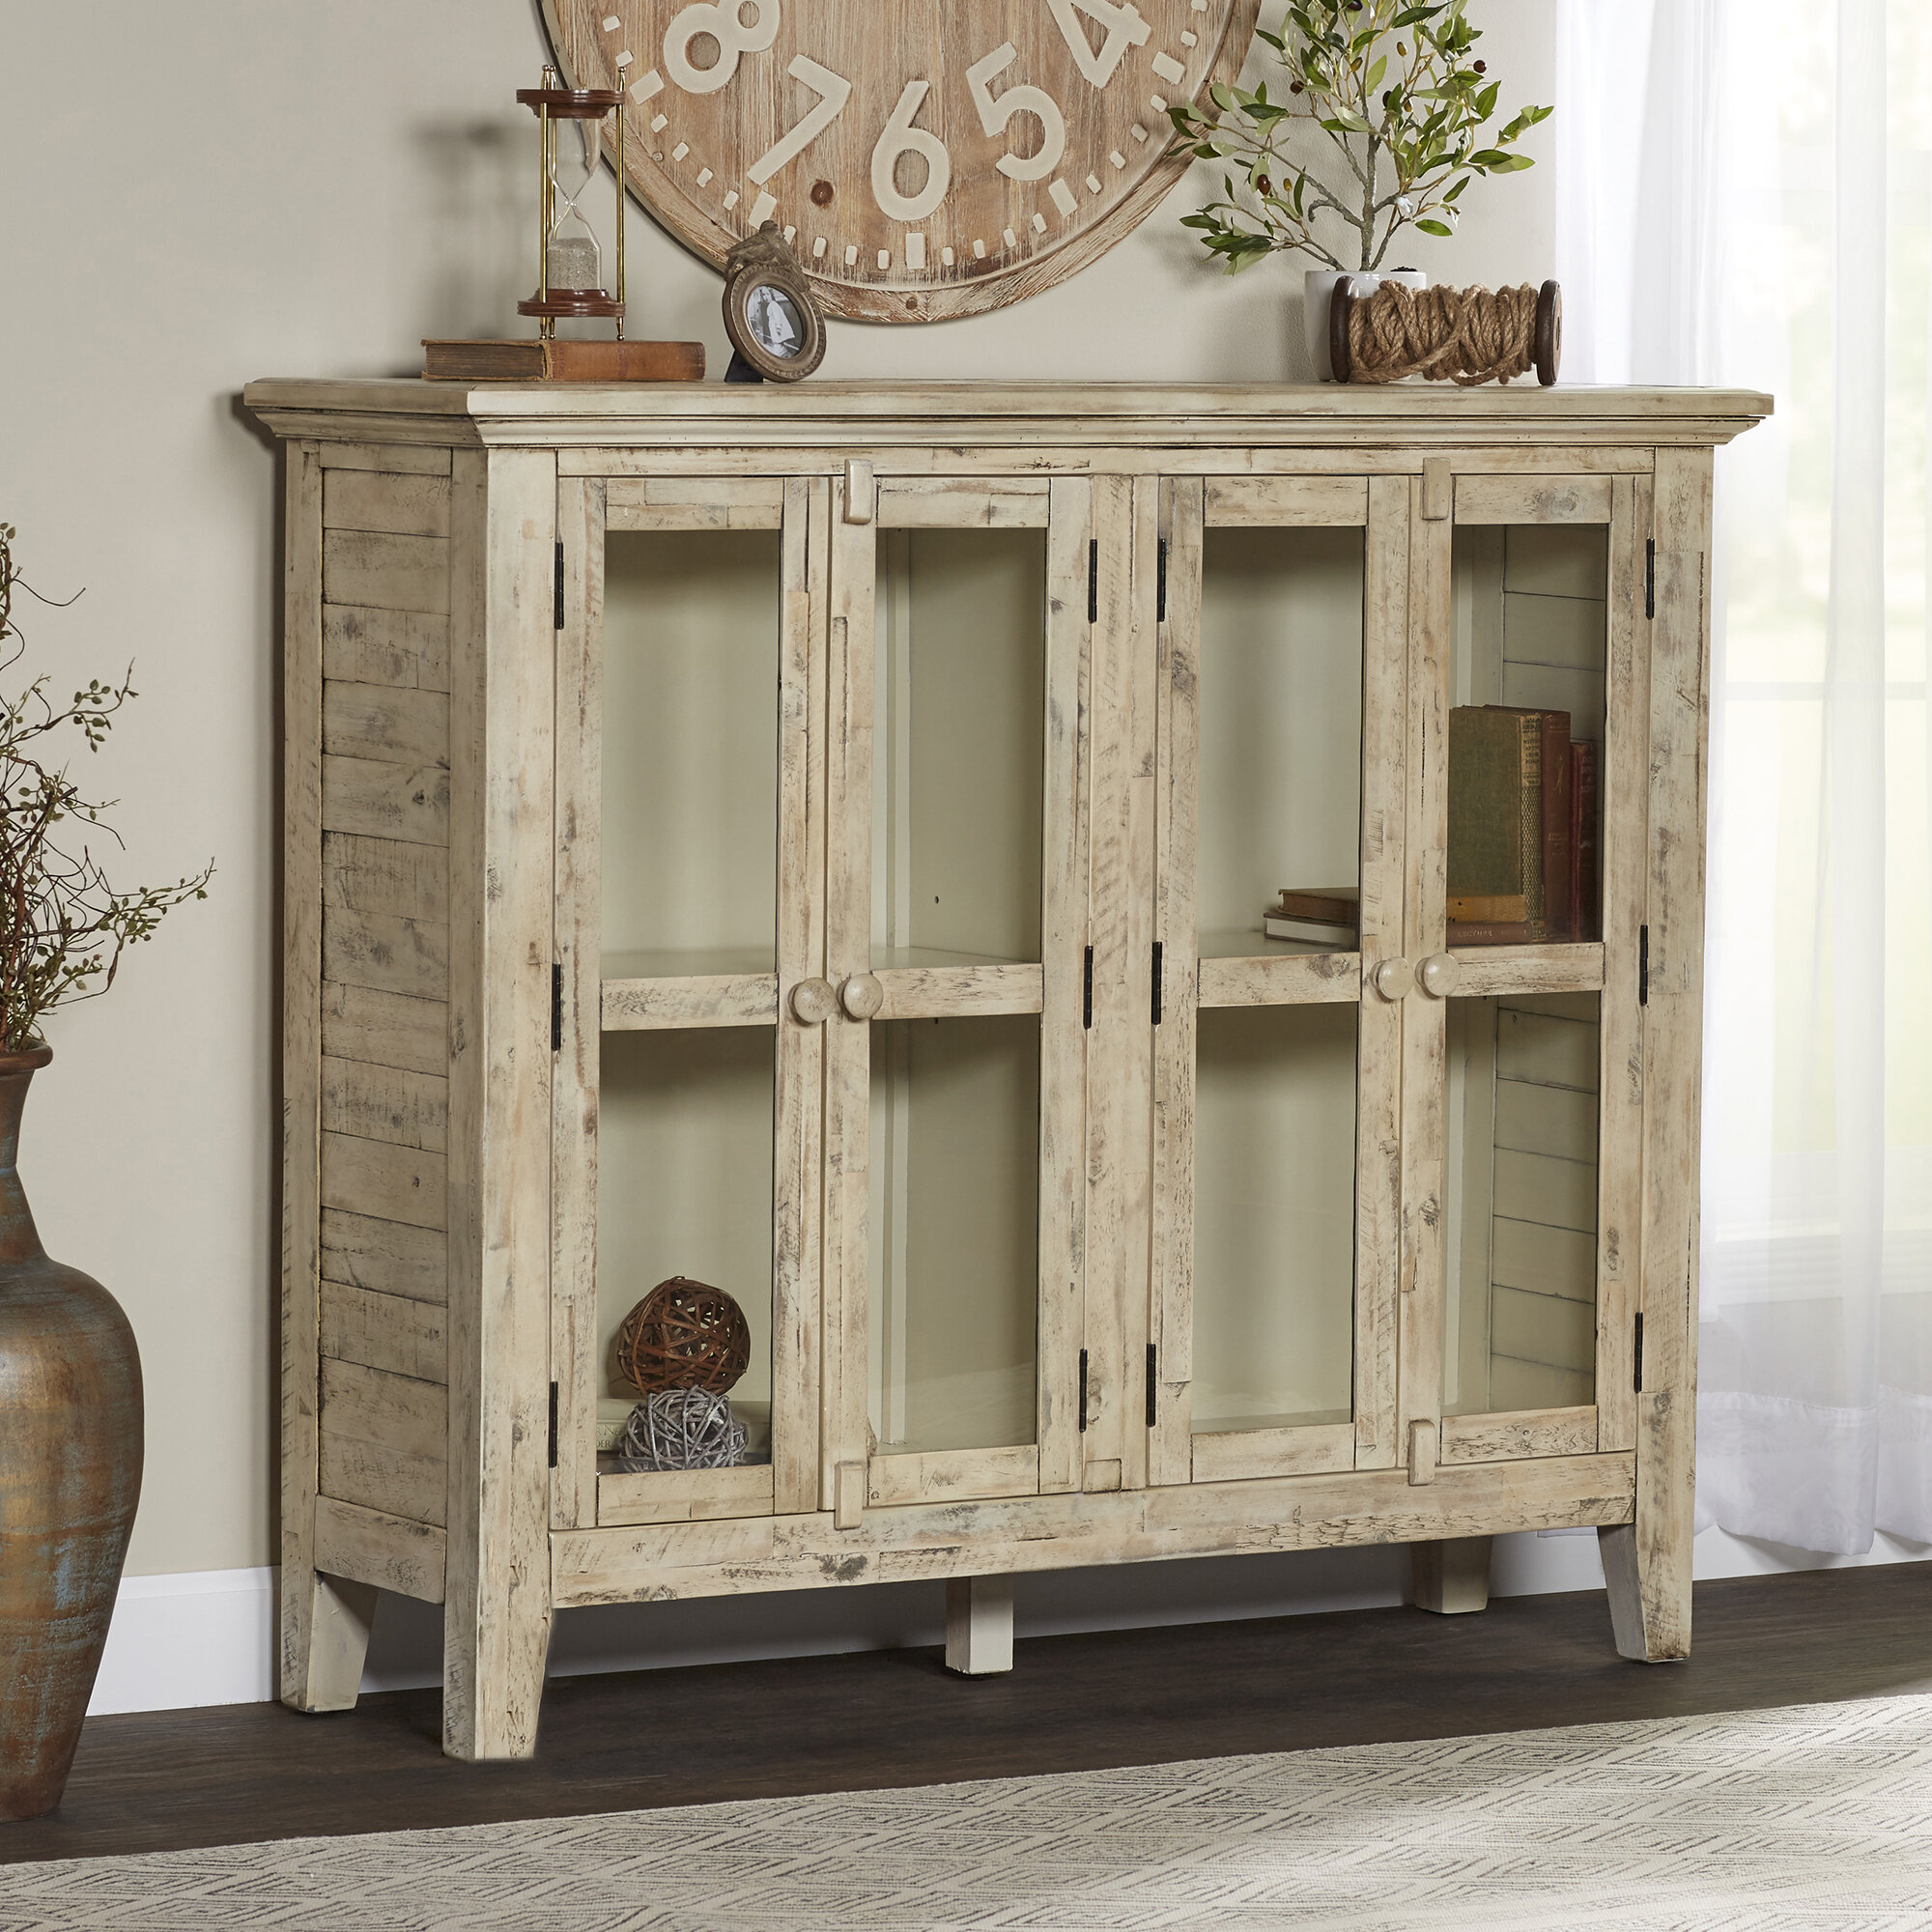 nc greensboro nv used las discount fu delaware wood vegas furniture de stunning breathtaking ideas unfinished using canterbury nh dover home discounters for